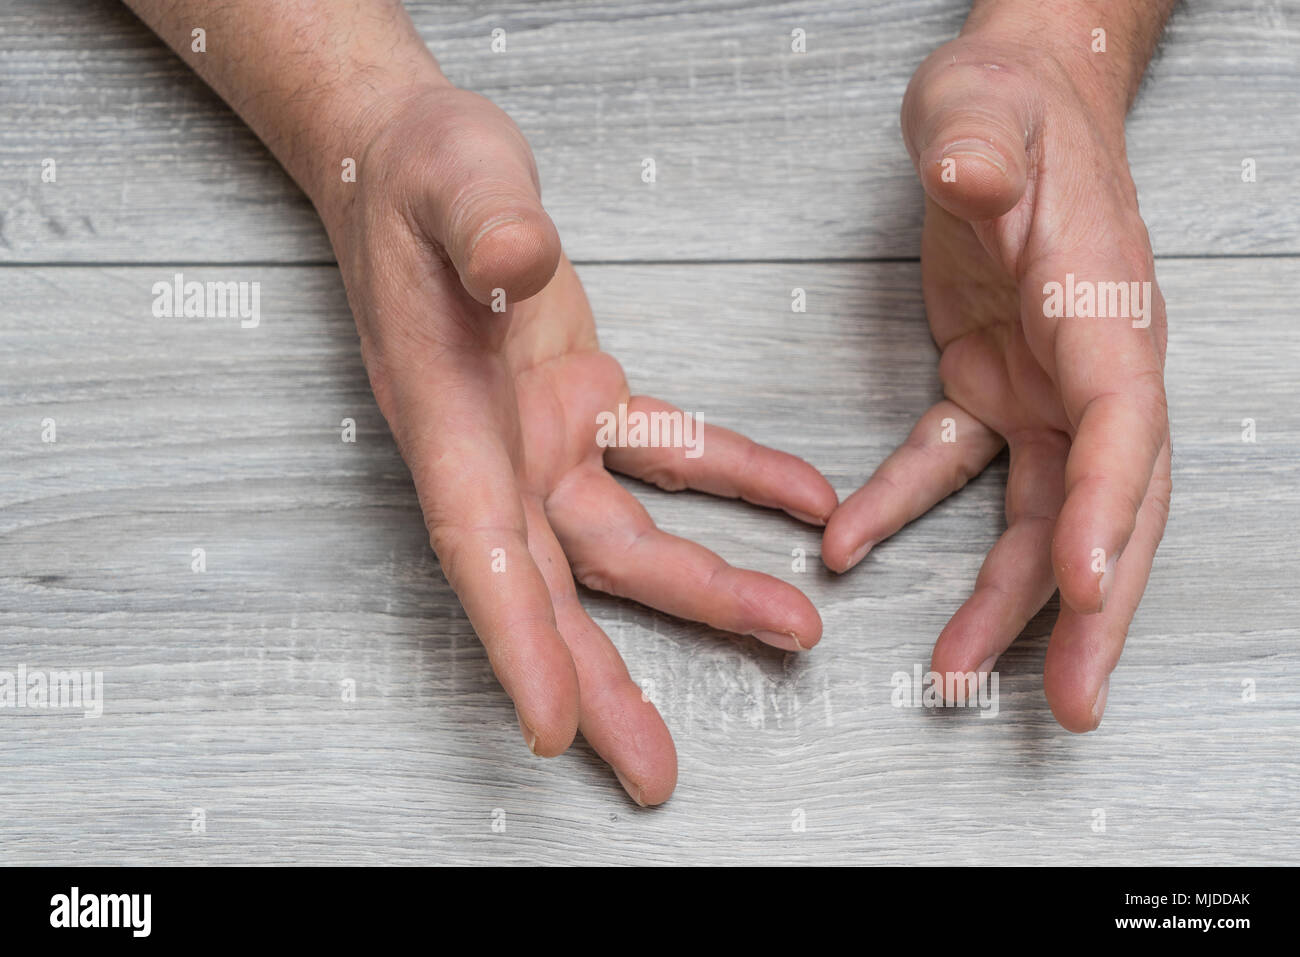 the gesture of a man's hands during an argument - Stock Image